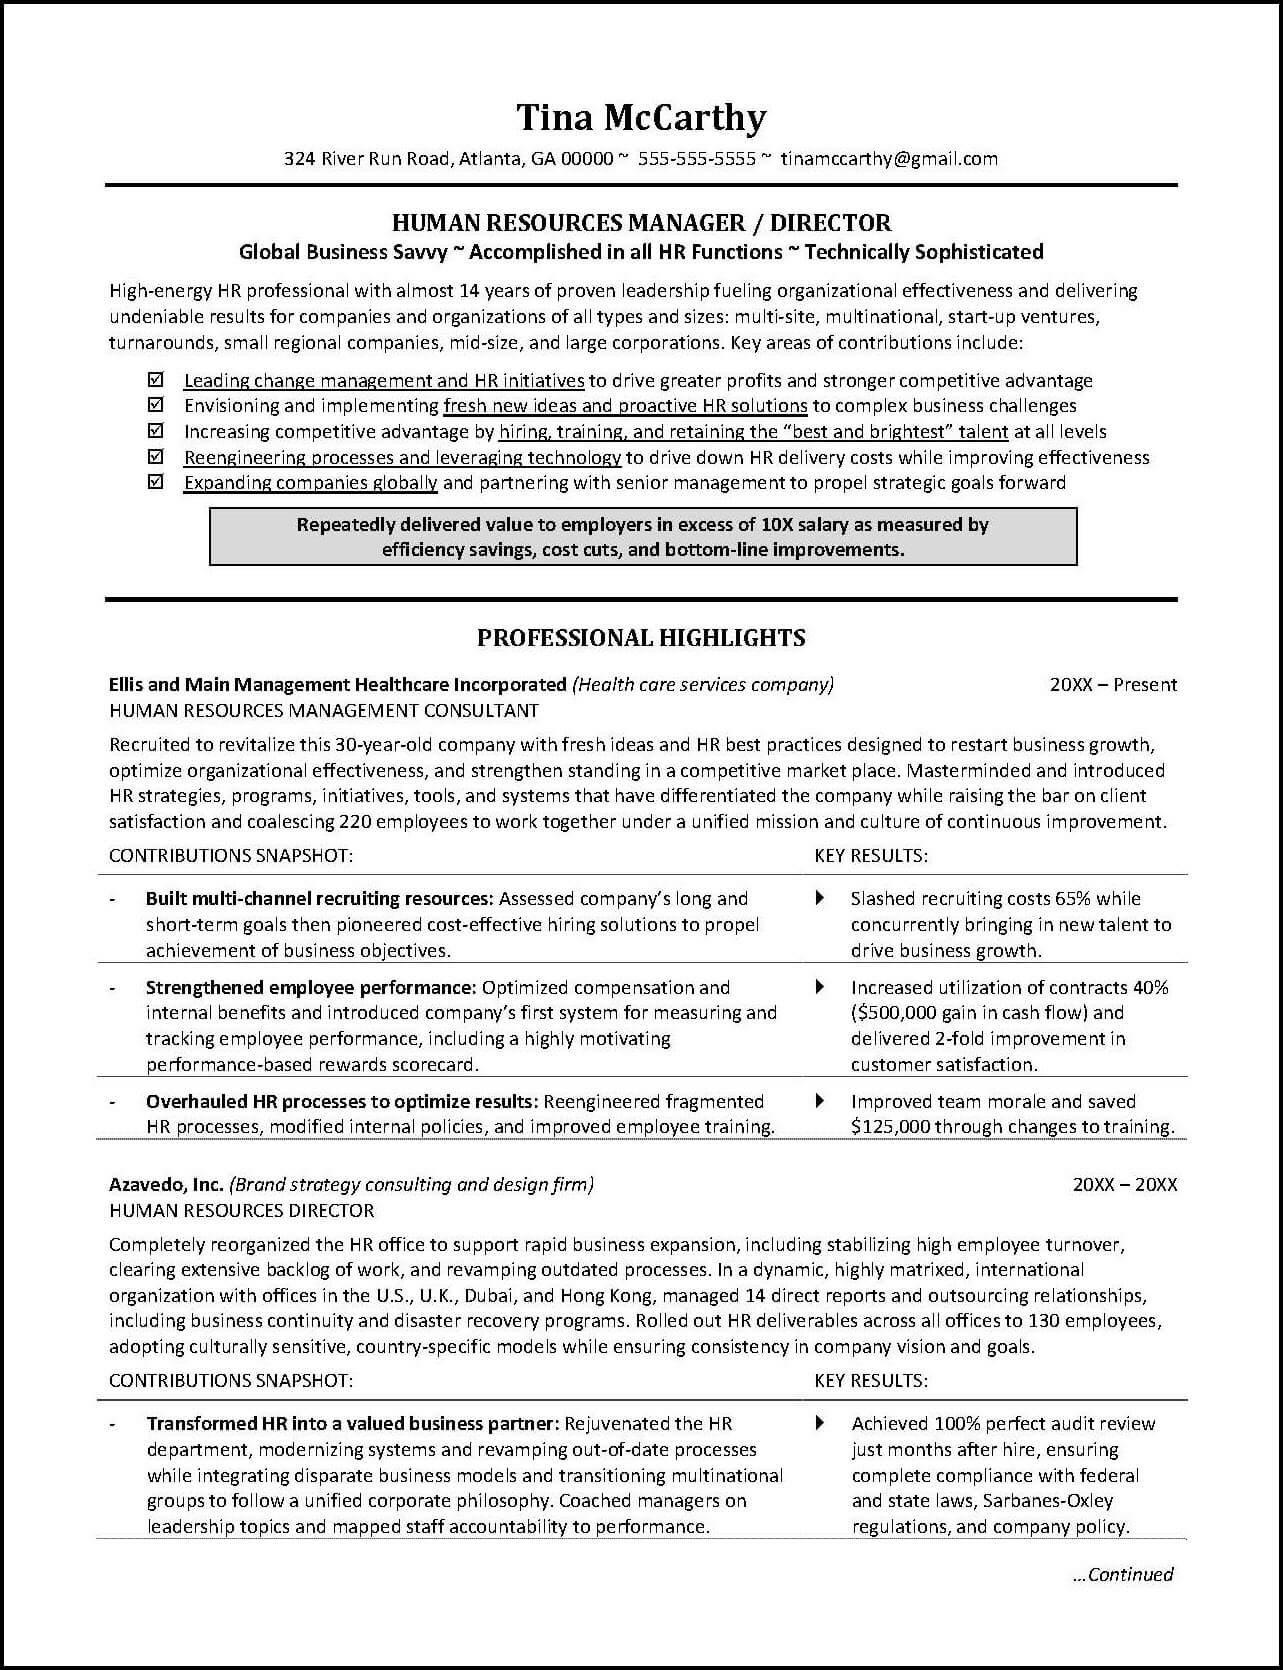 human resources resume example distinctive career services manager sample attorney Resume Human Resources Manager Resume Sample